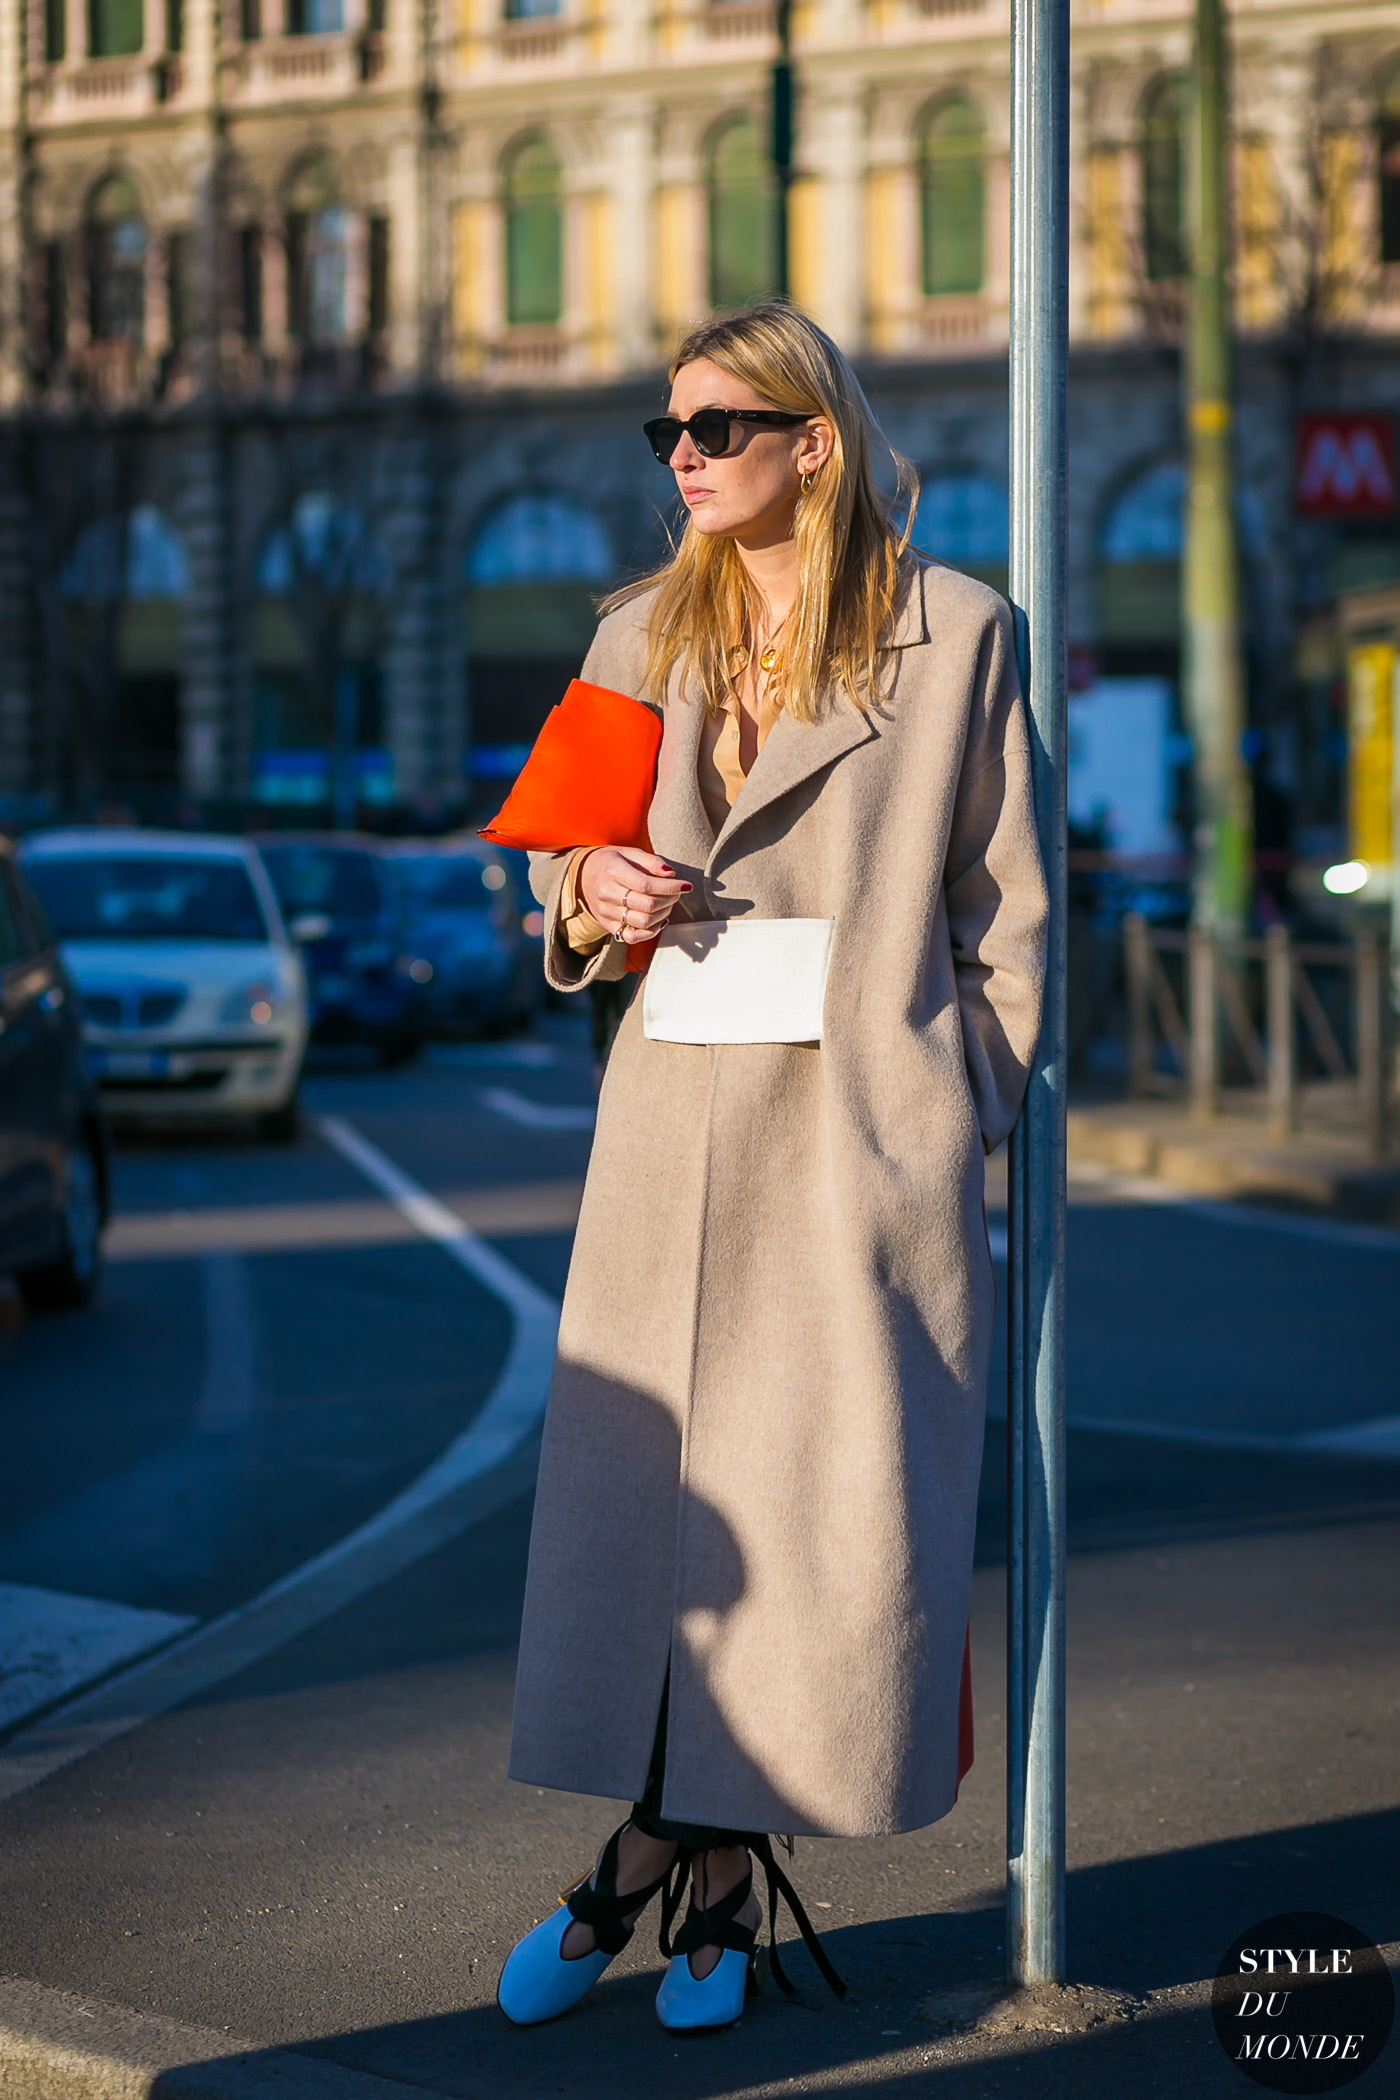 Camille Charriere by STYLEDUMONDE Street Style Fashion Photography0E2A3366